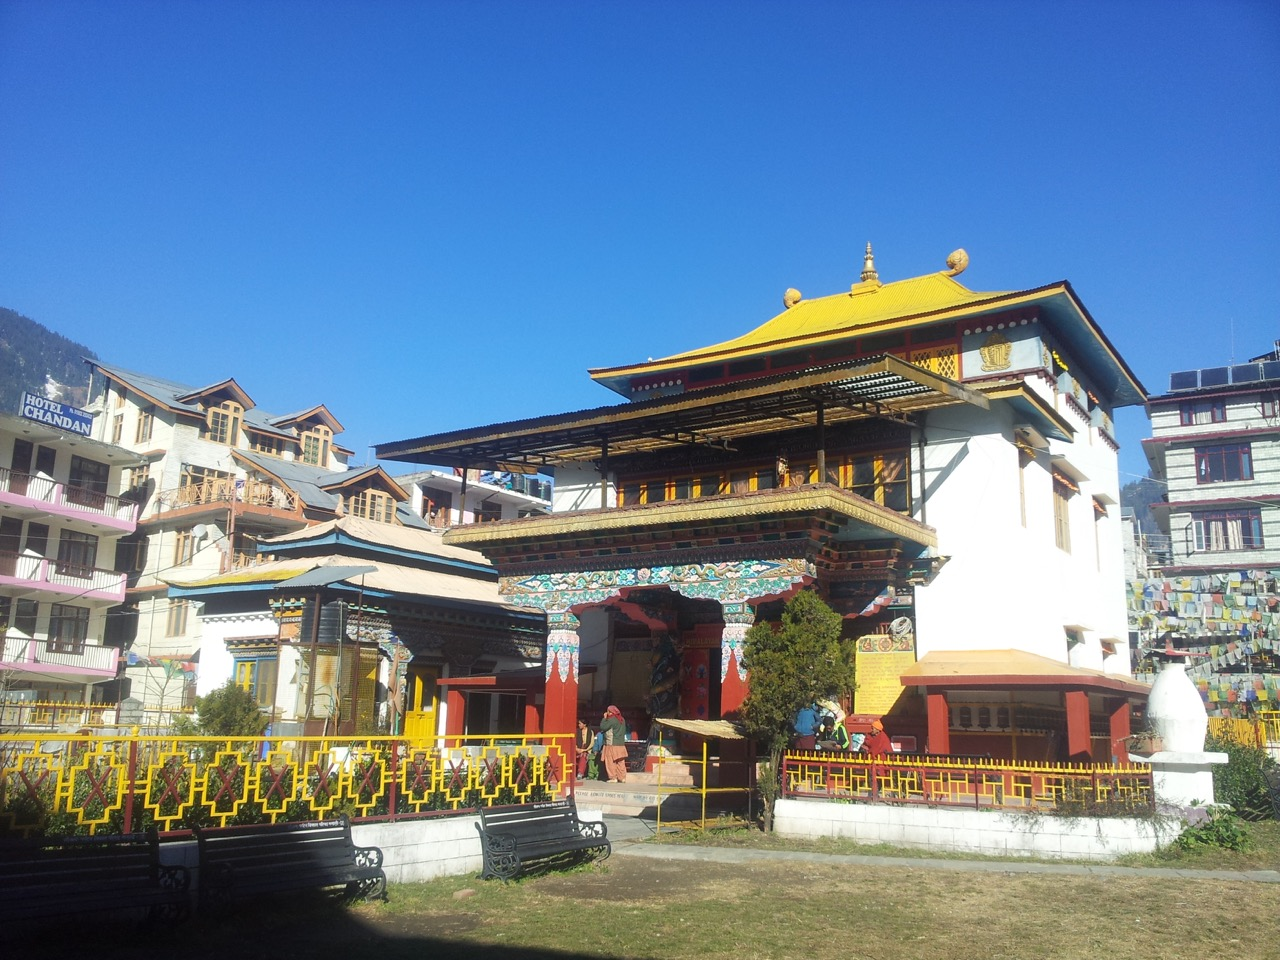 The Himalayan Buddhist Monastery. A Bengali guy runs the lodging inside the monastery. He had put signboards in Bengali all around the places.